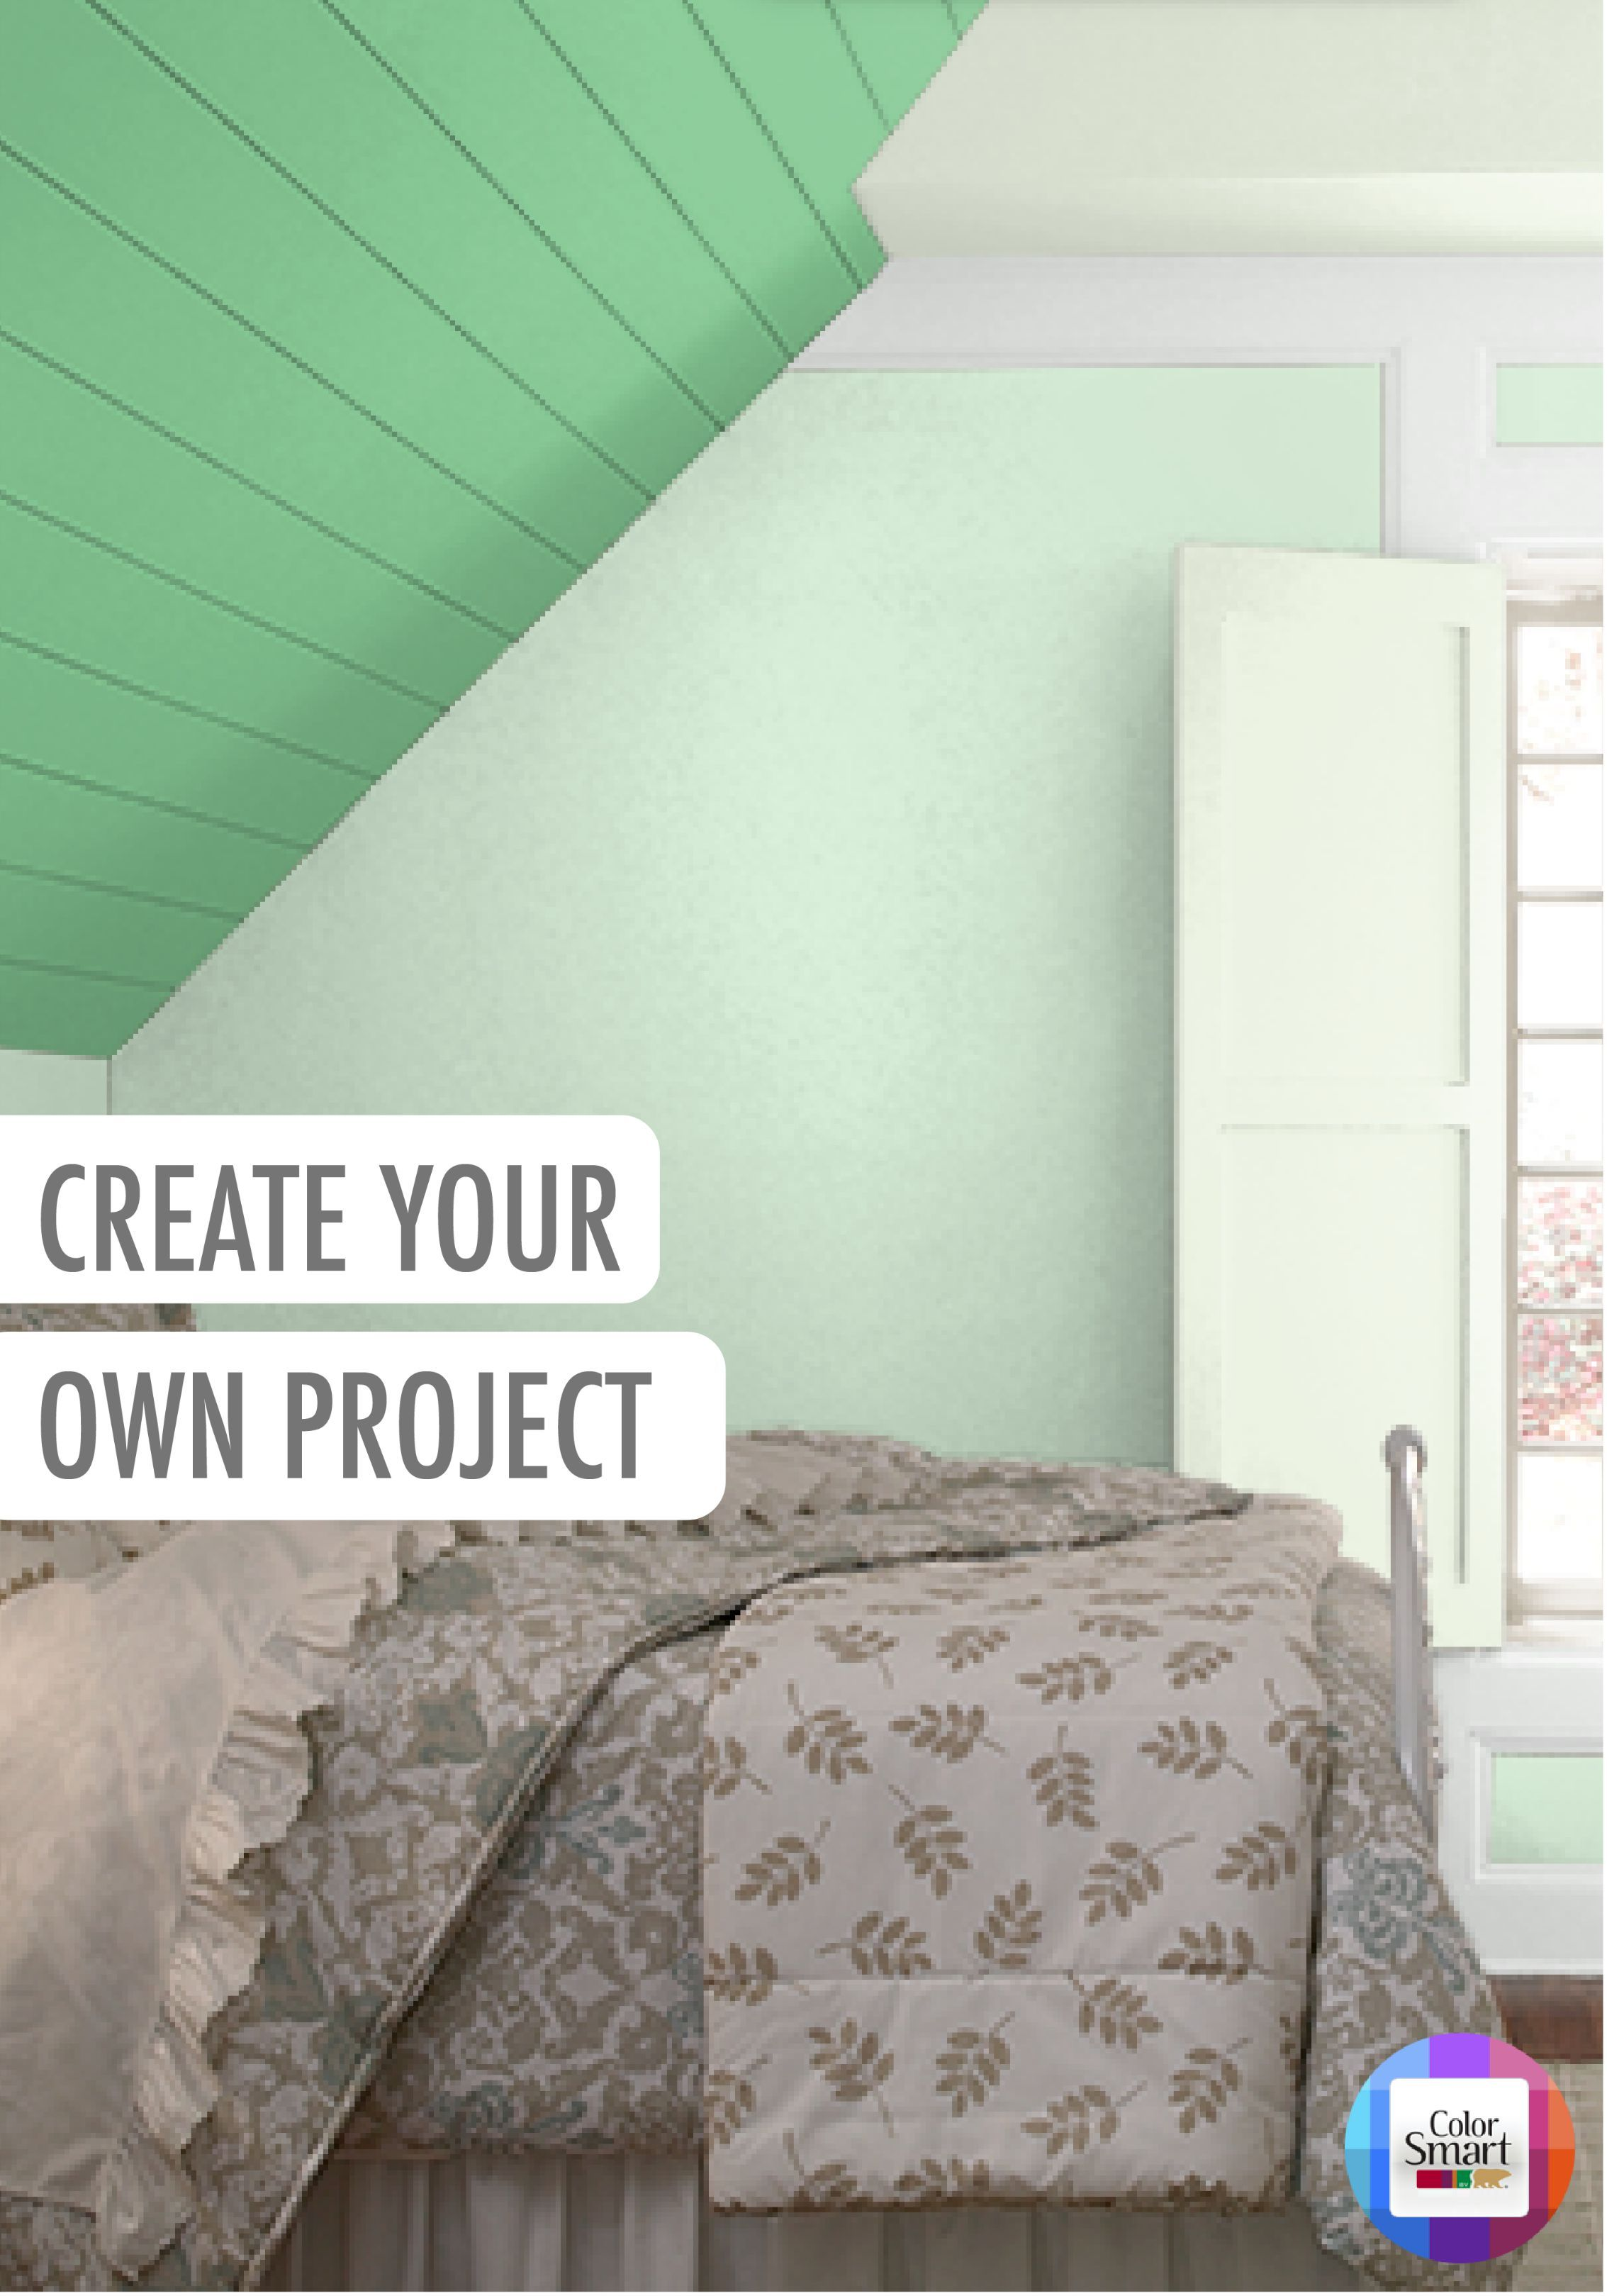 customize your own bedroom kitchen living room or entryway with